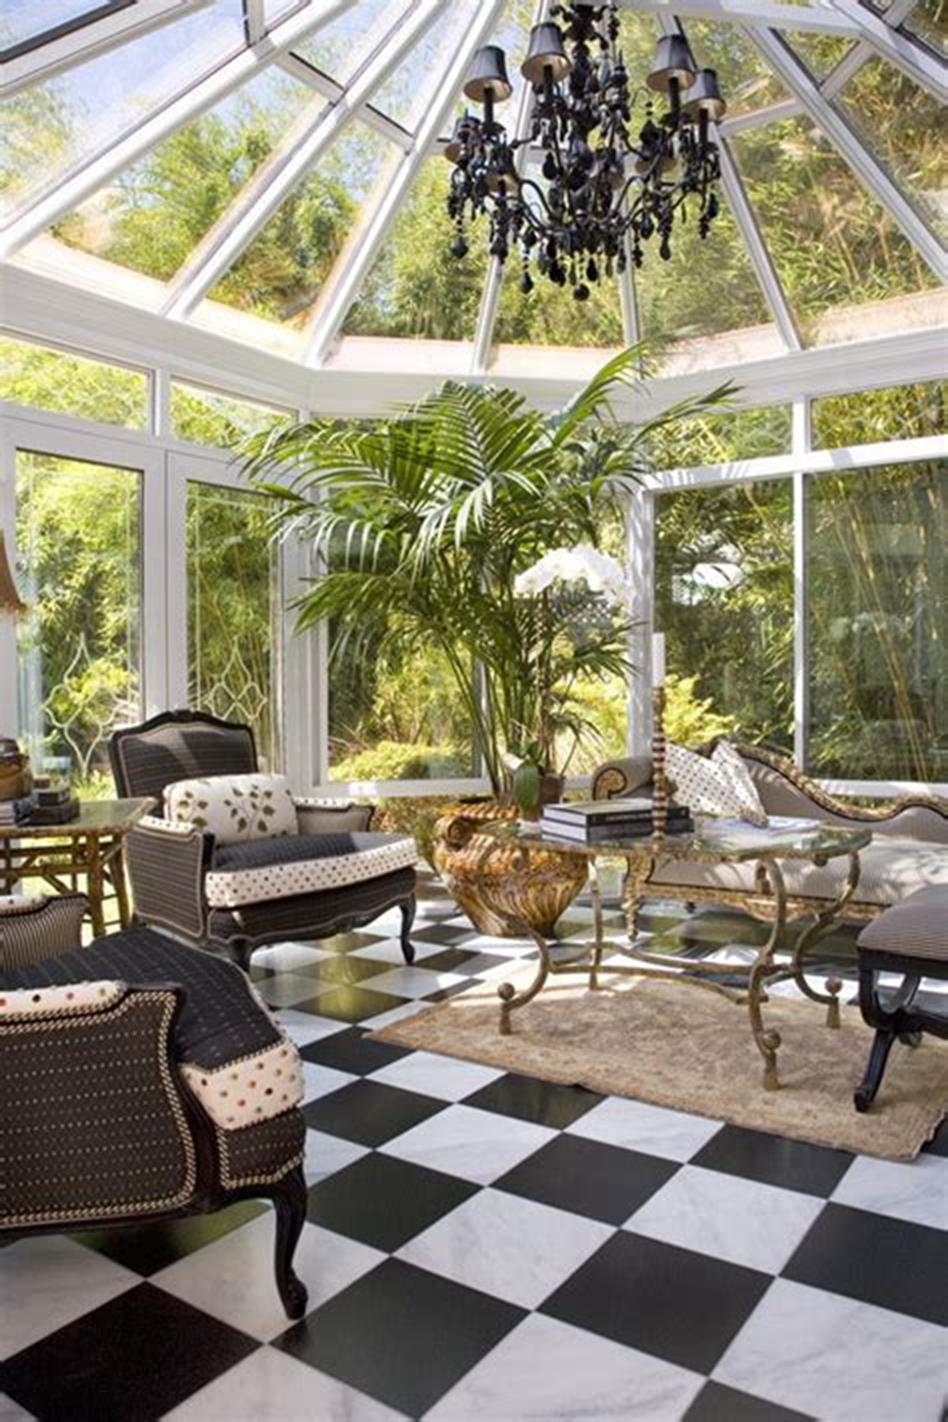 50 Most Popular Affordable Sunroom Design Ideas on a Budget 4